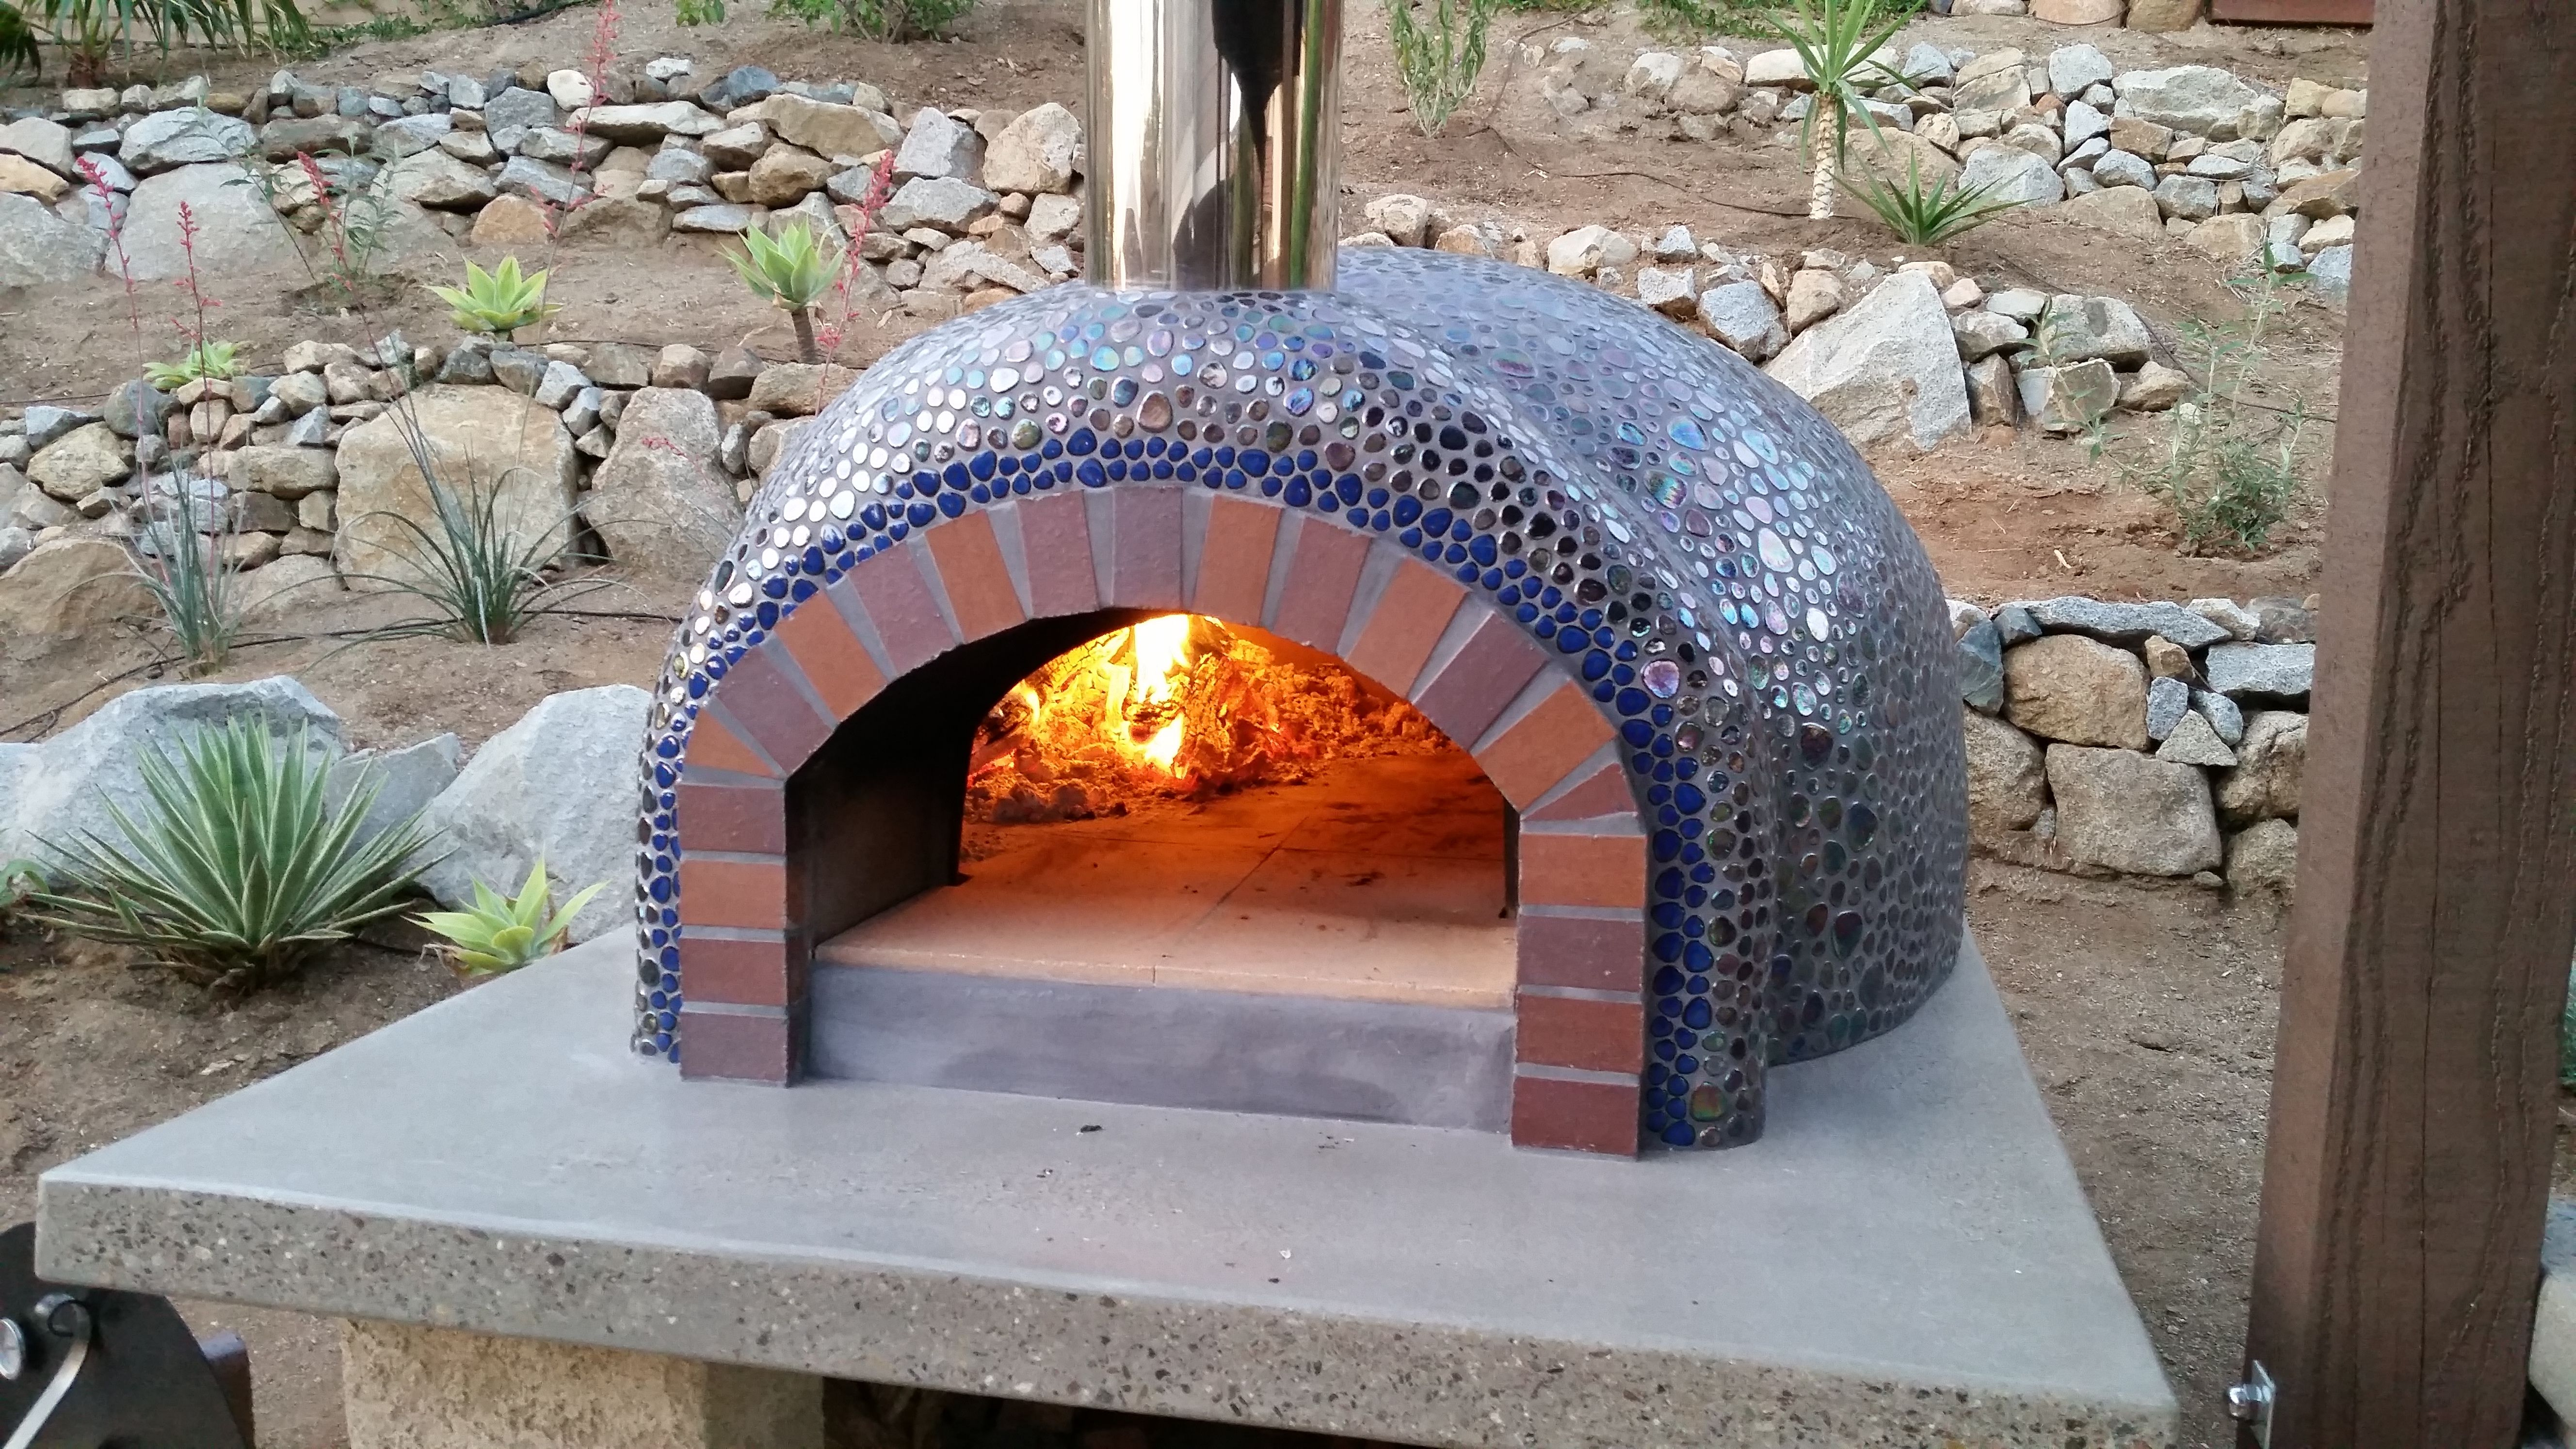 We built this Forno Bravo Casa2G100 oven: It's GREAT!